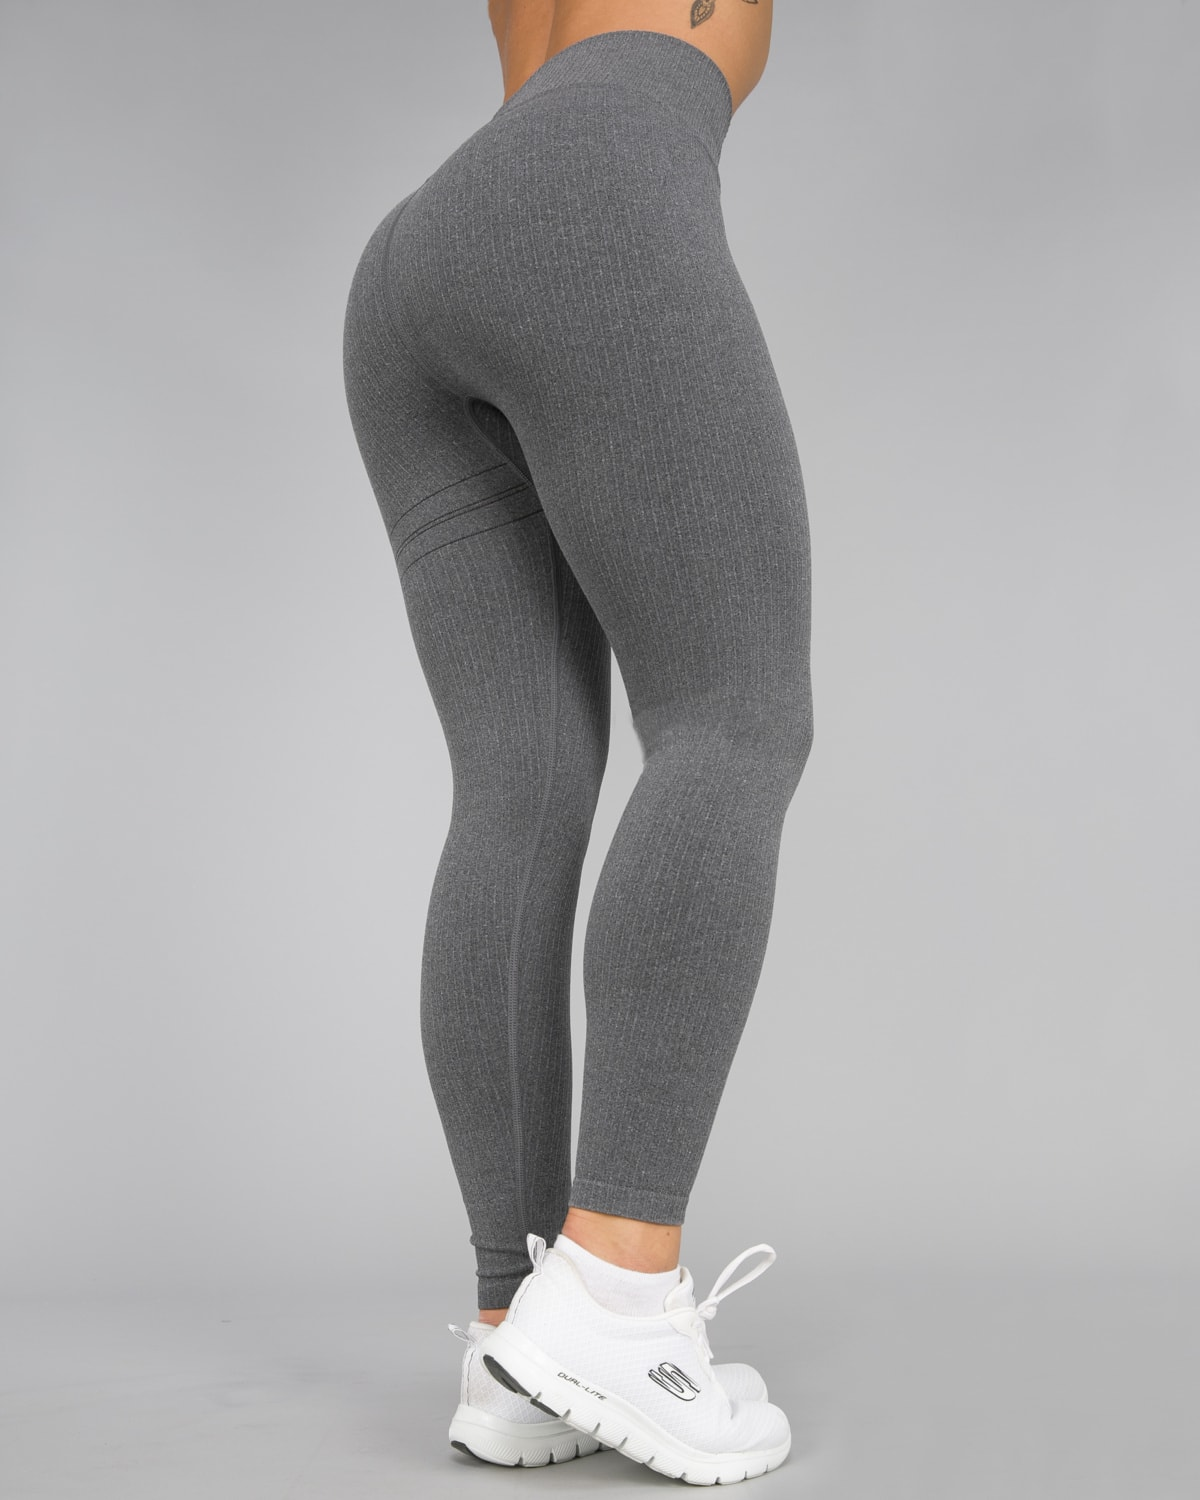 Aim'n Grey Ribbed Seamless Tights12